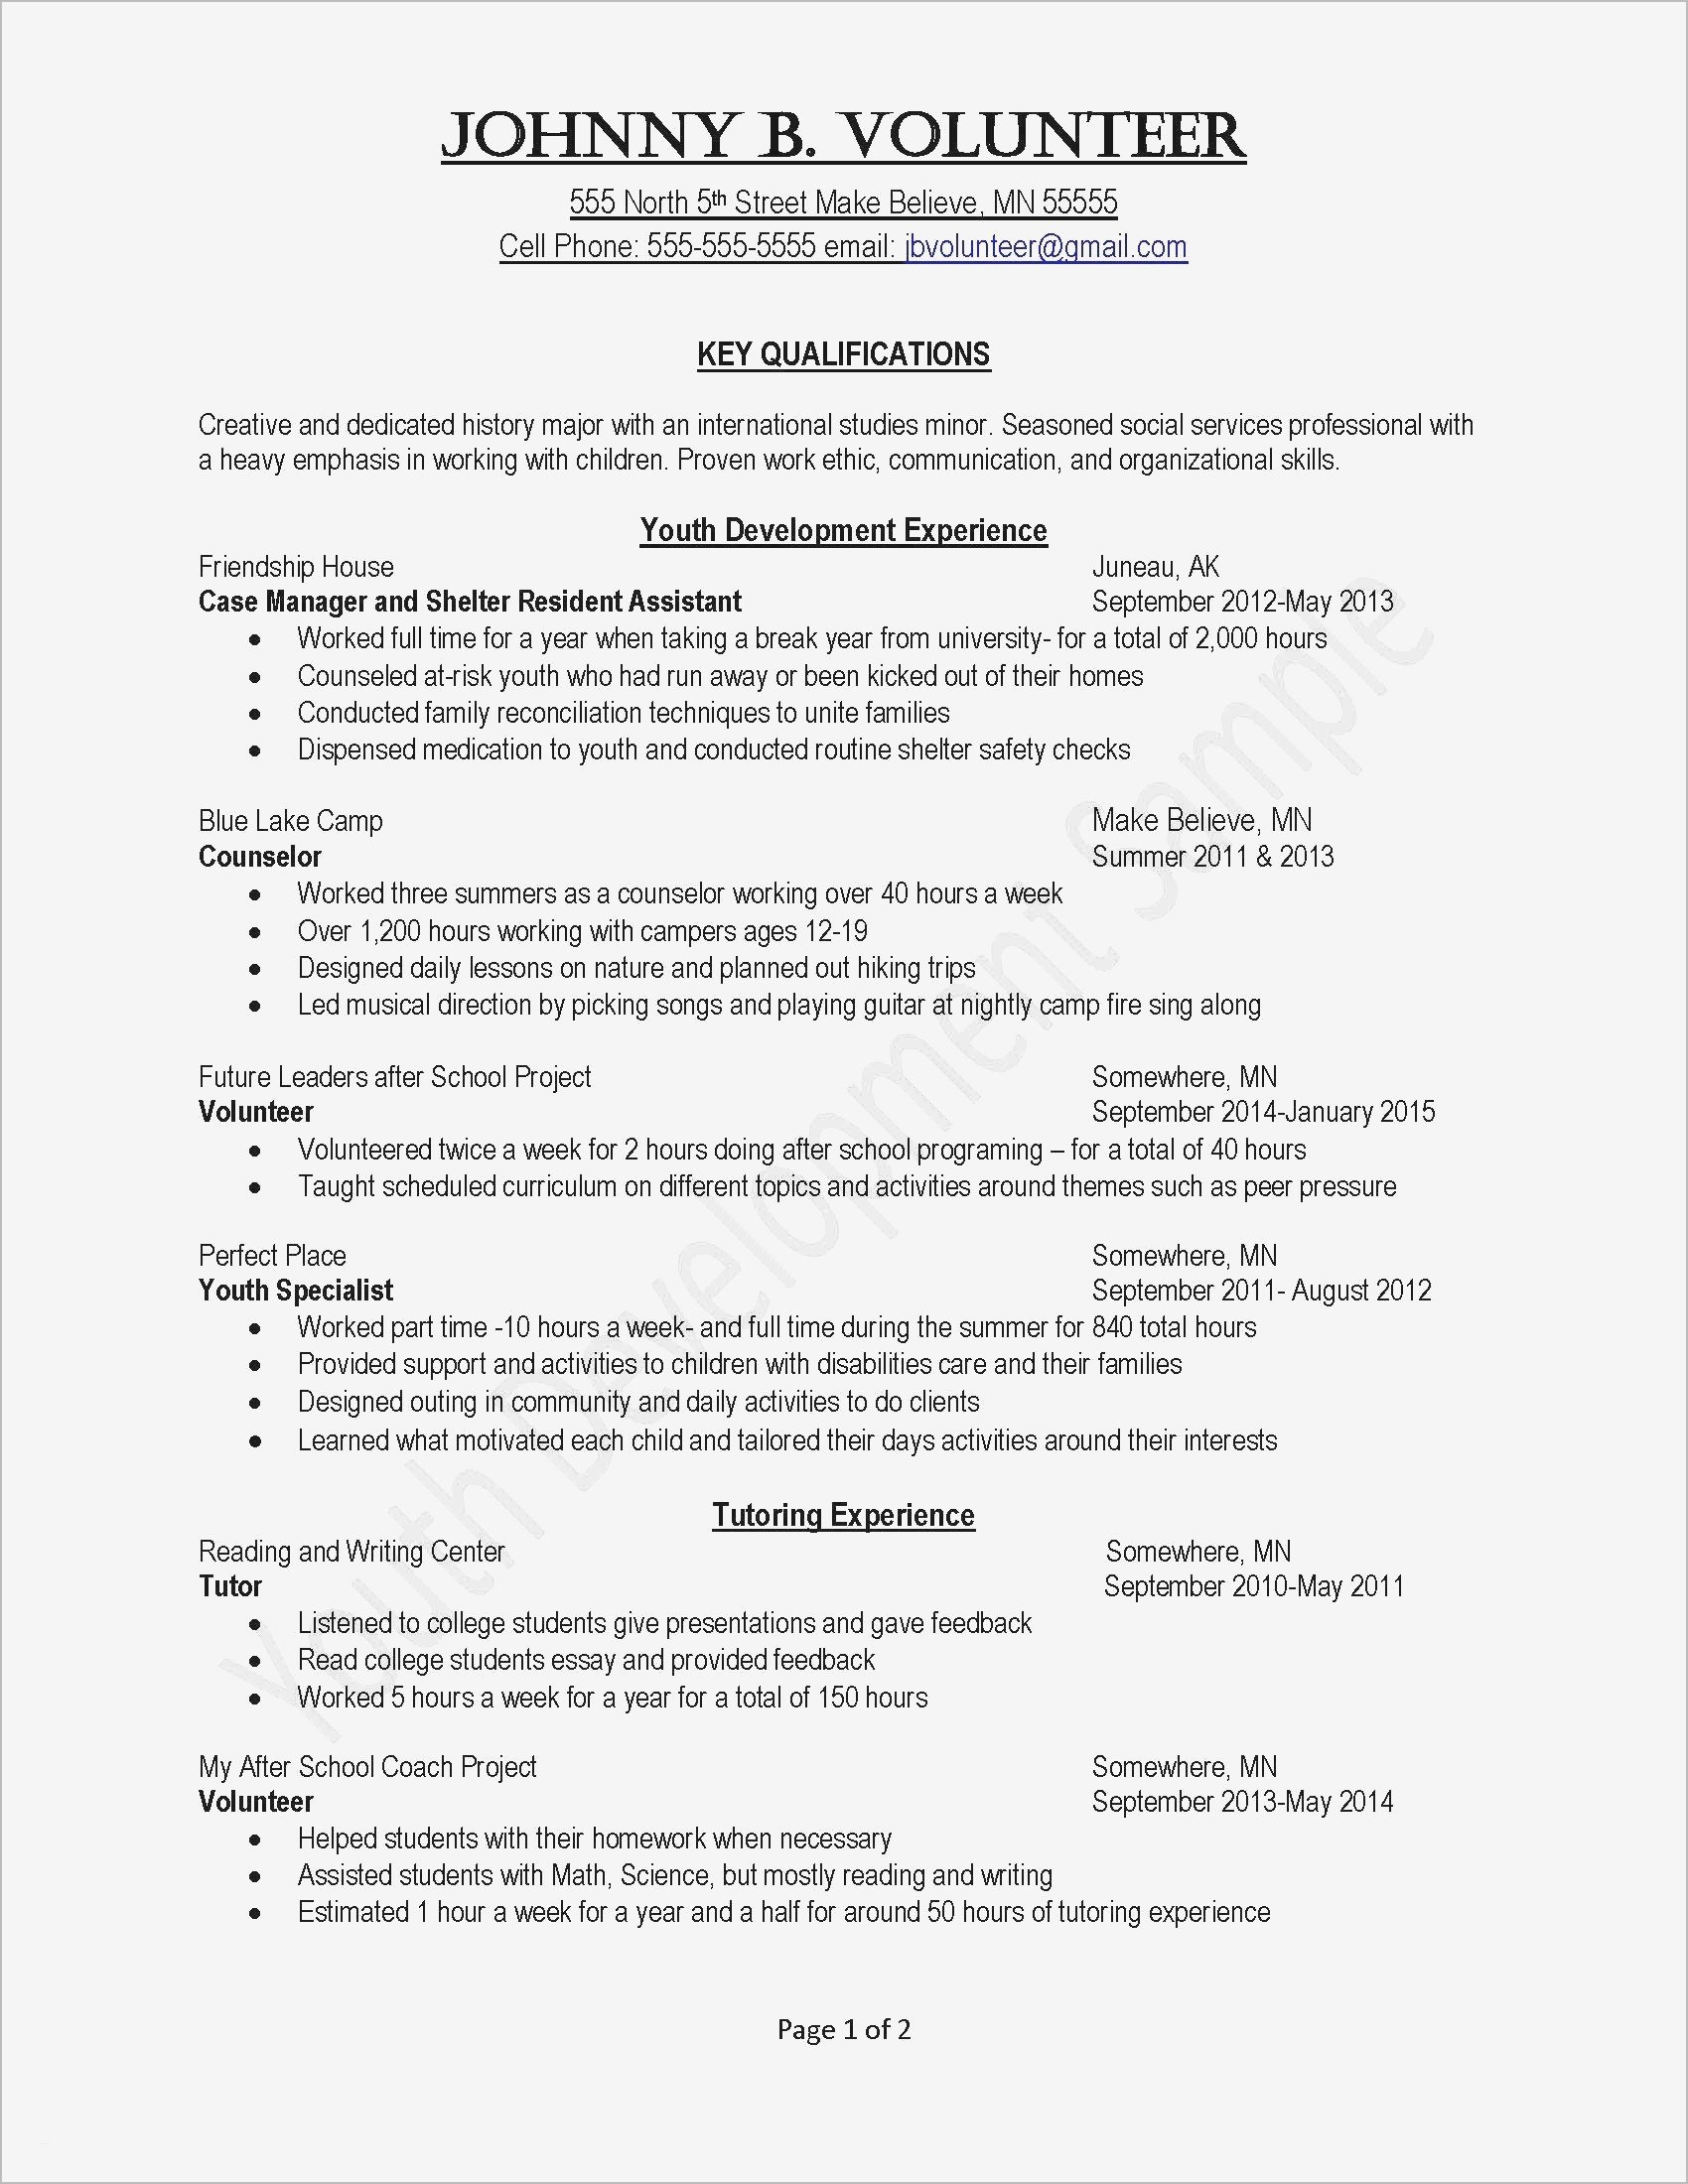 Personal Letter Template - Personal Resume Template Free Awesome Job Fer Letter Template Us